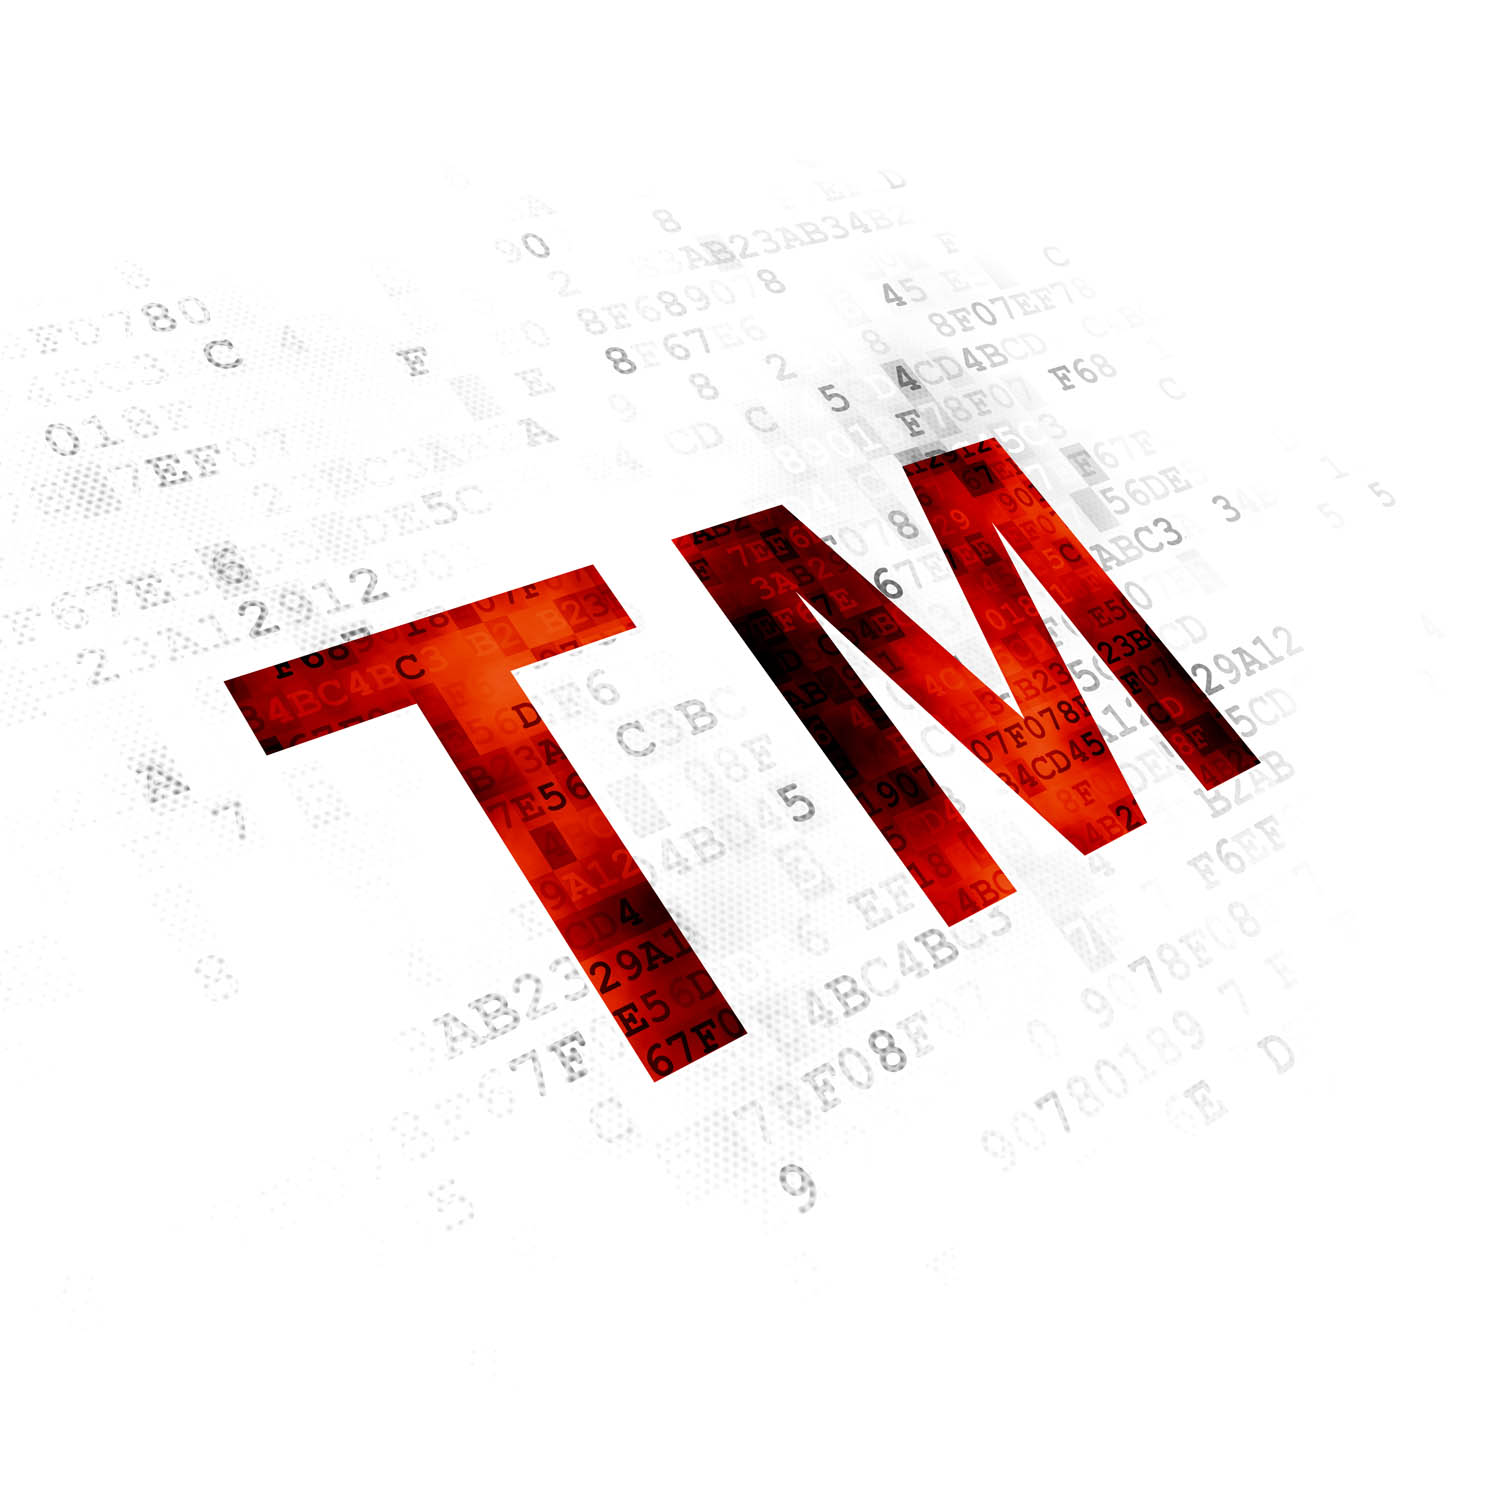 Trademark Registration: Protecting Your Logo Design